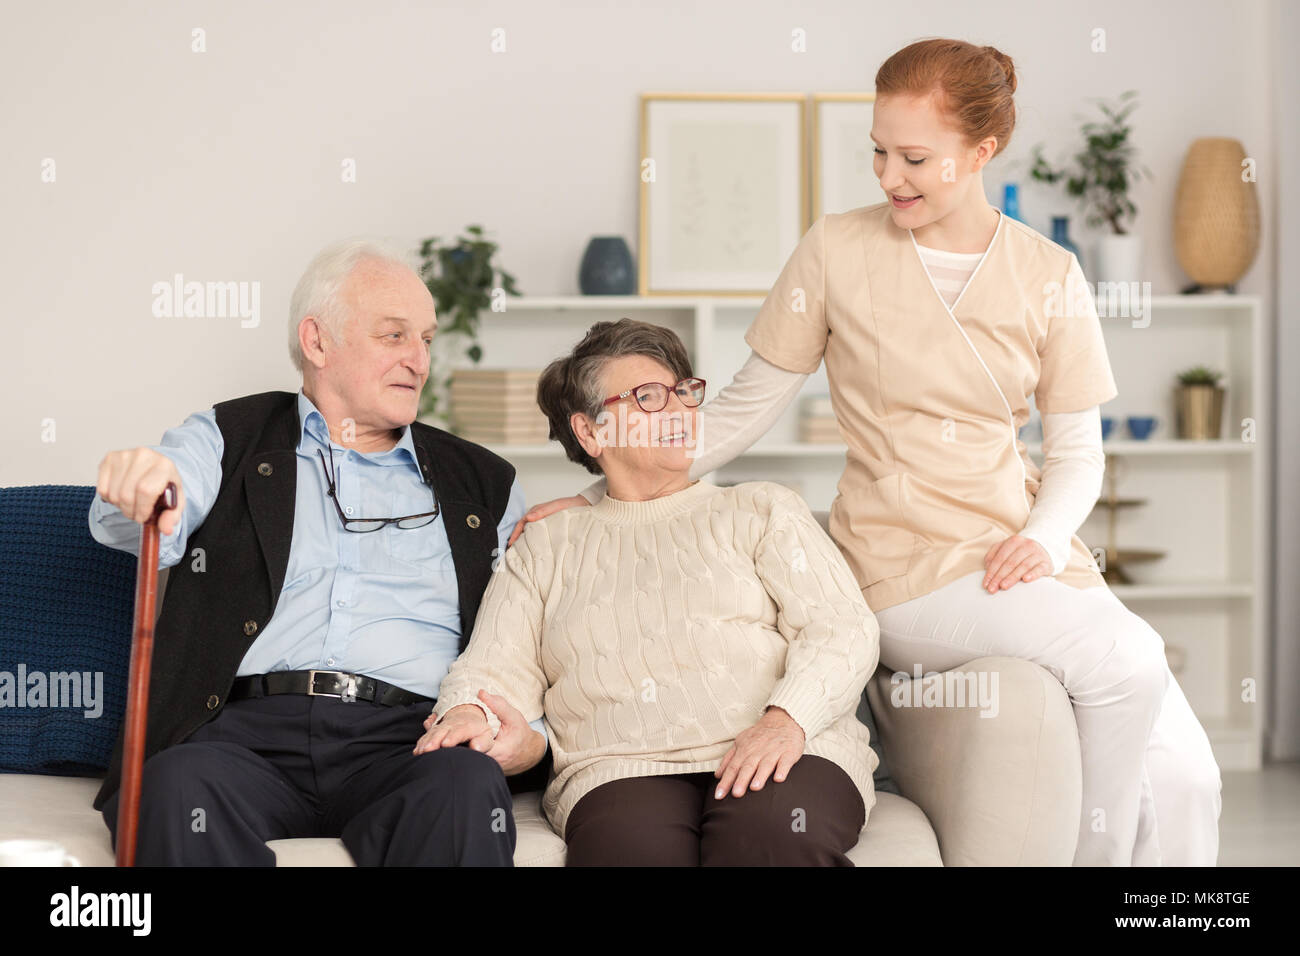 Professional assistant supporting and consoling a worried senior married couple in a living room of a day care center - Stock Image